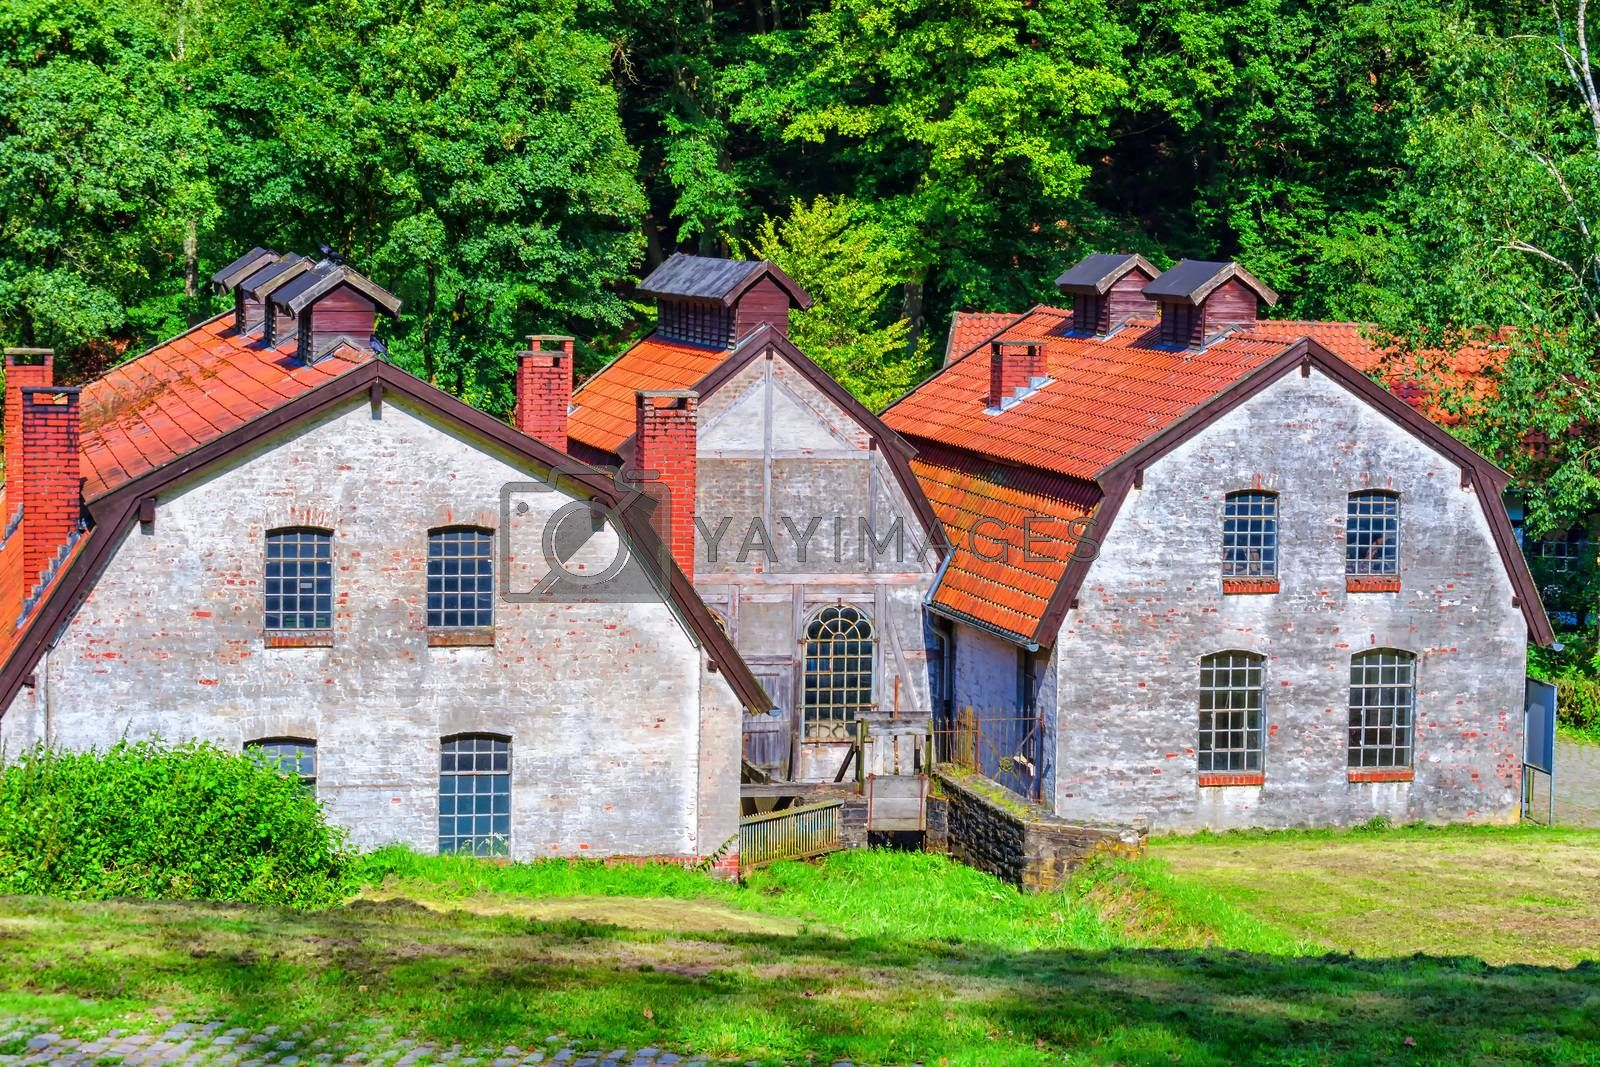 Old factory building and facade           by JFsPic